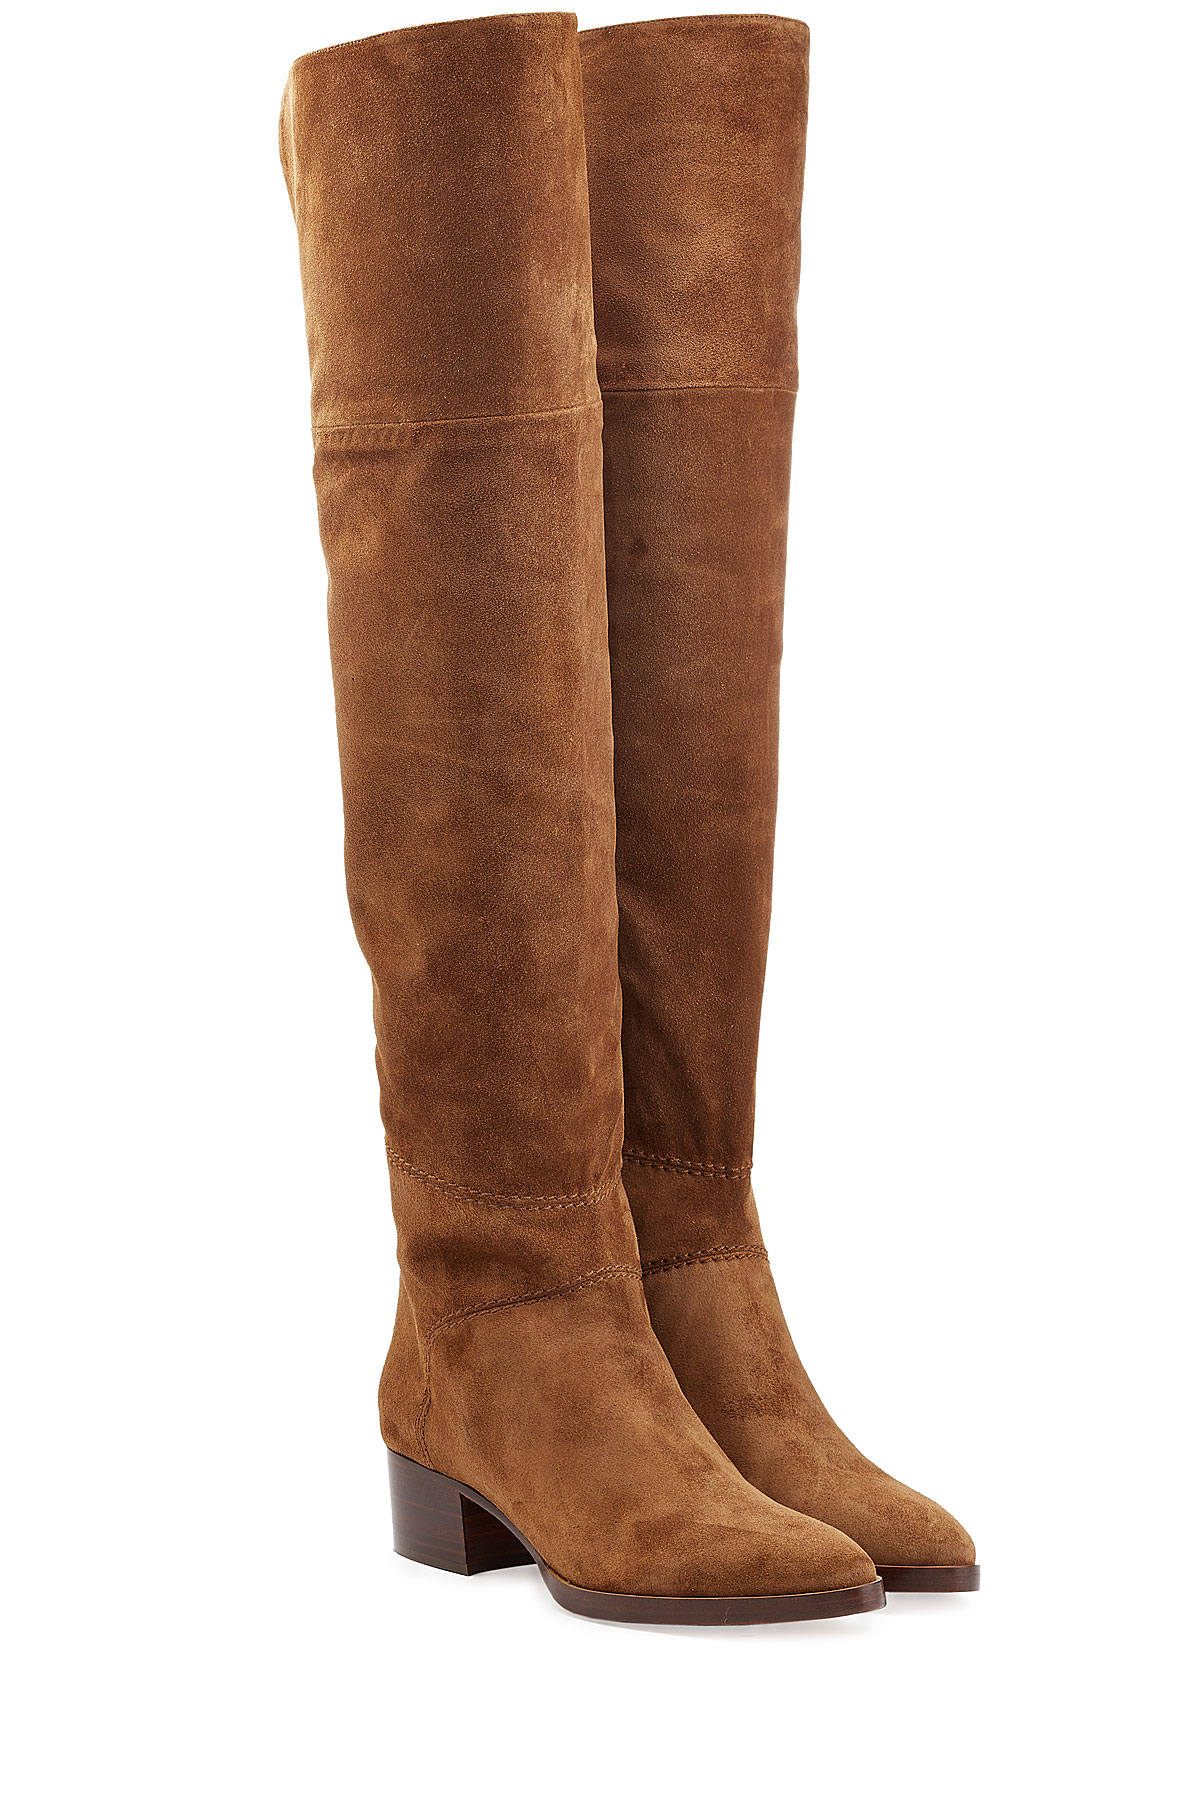 chlo 233 chlo 233 the knee suede boots camel in brown lyst